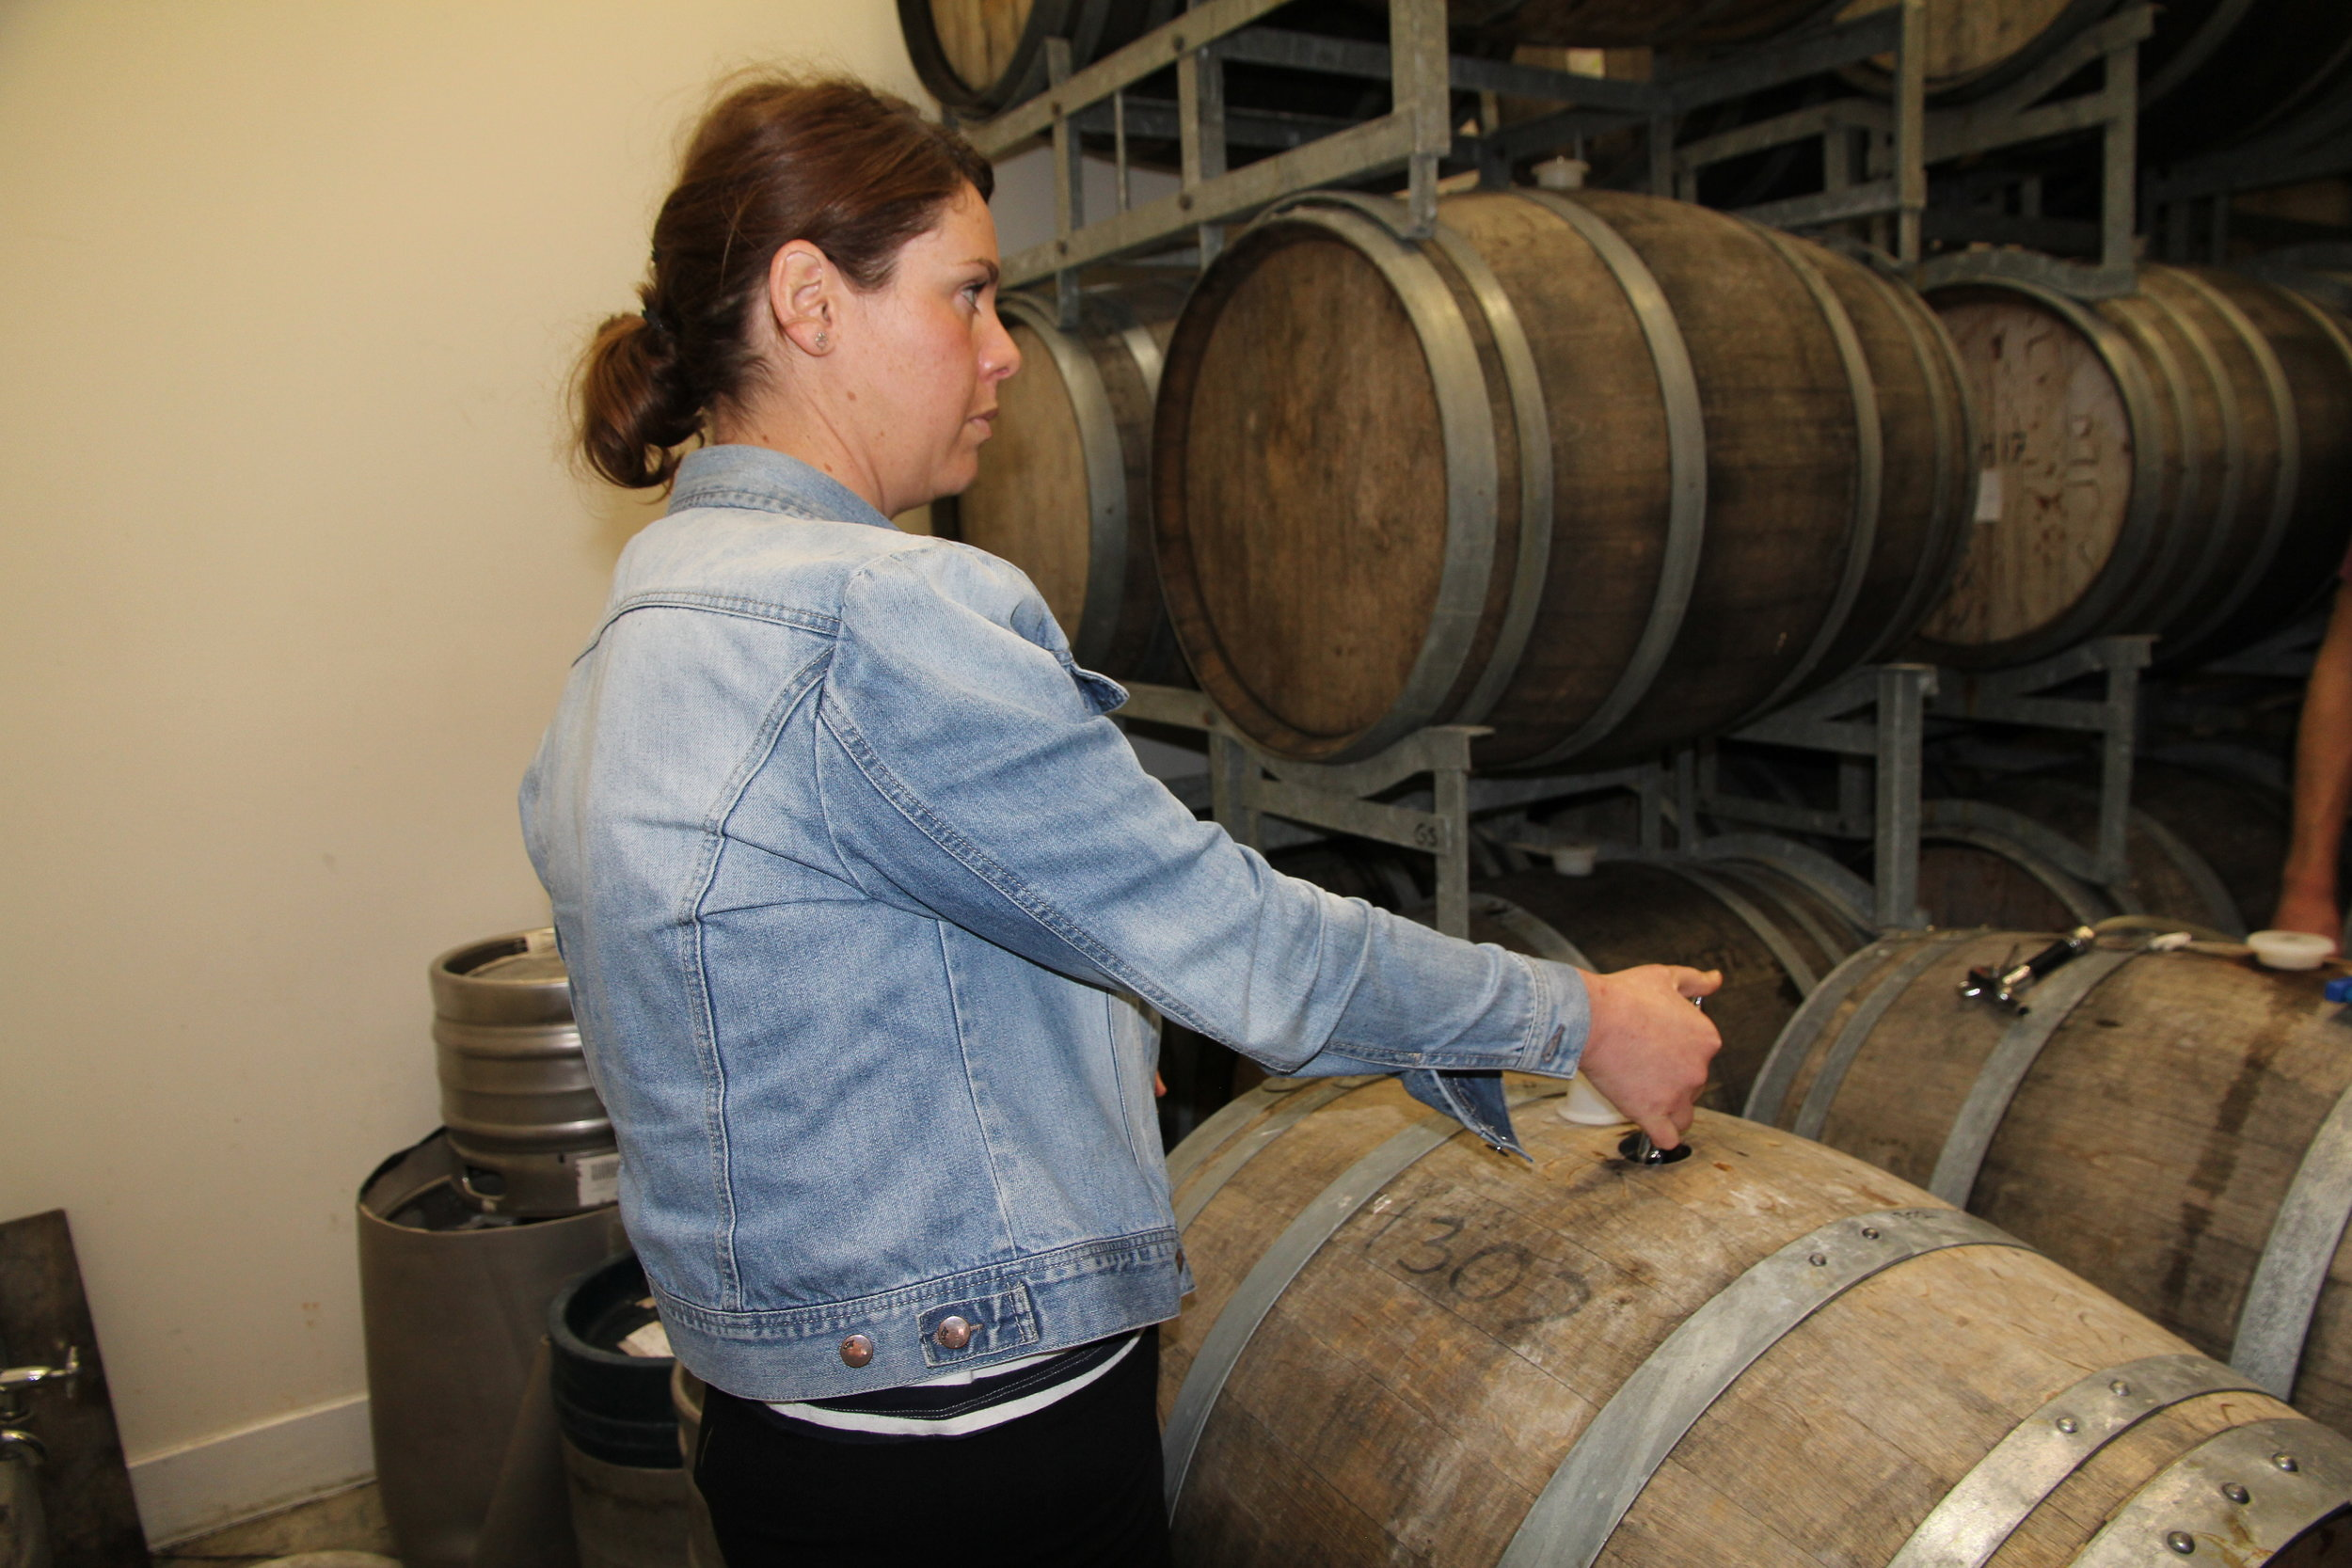 Preparing a barrel tasting.